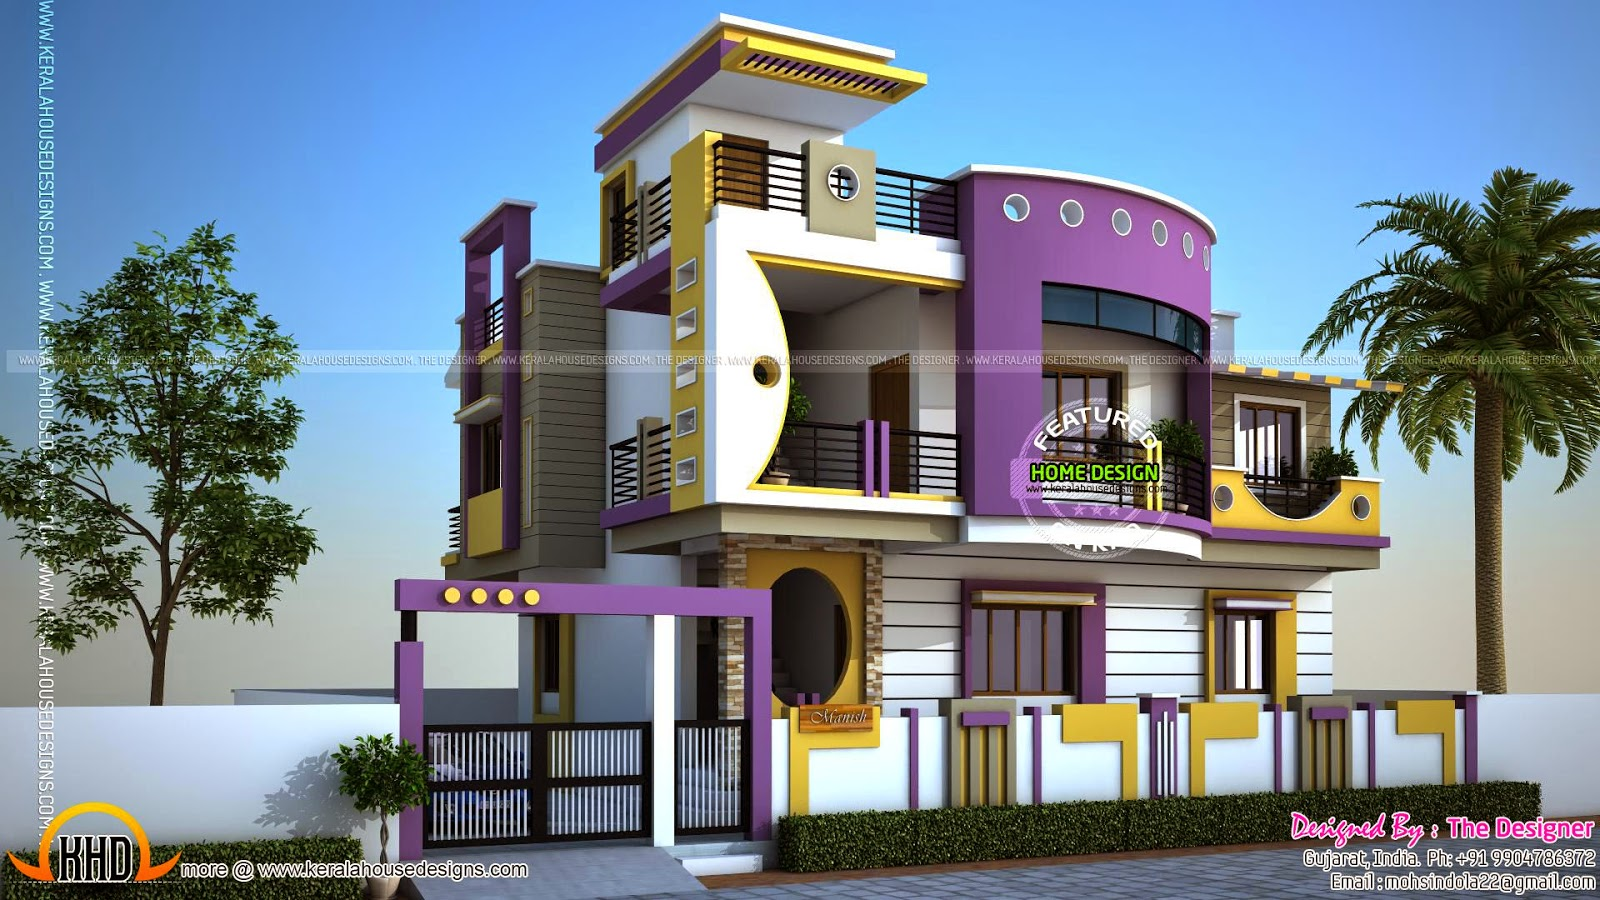 House exterior designs in contemporary style kerala home for House design outside view